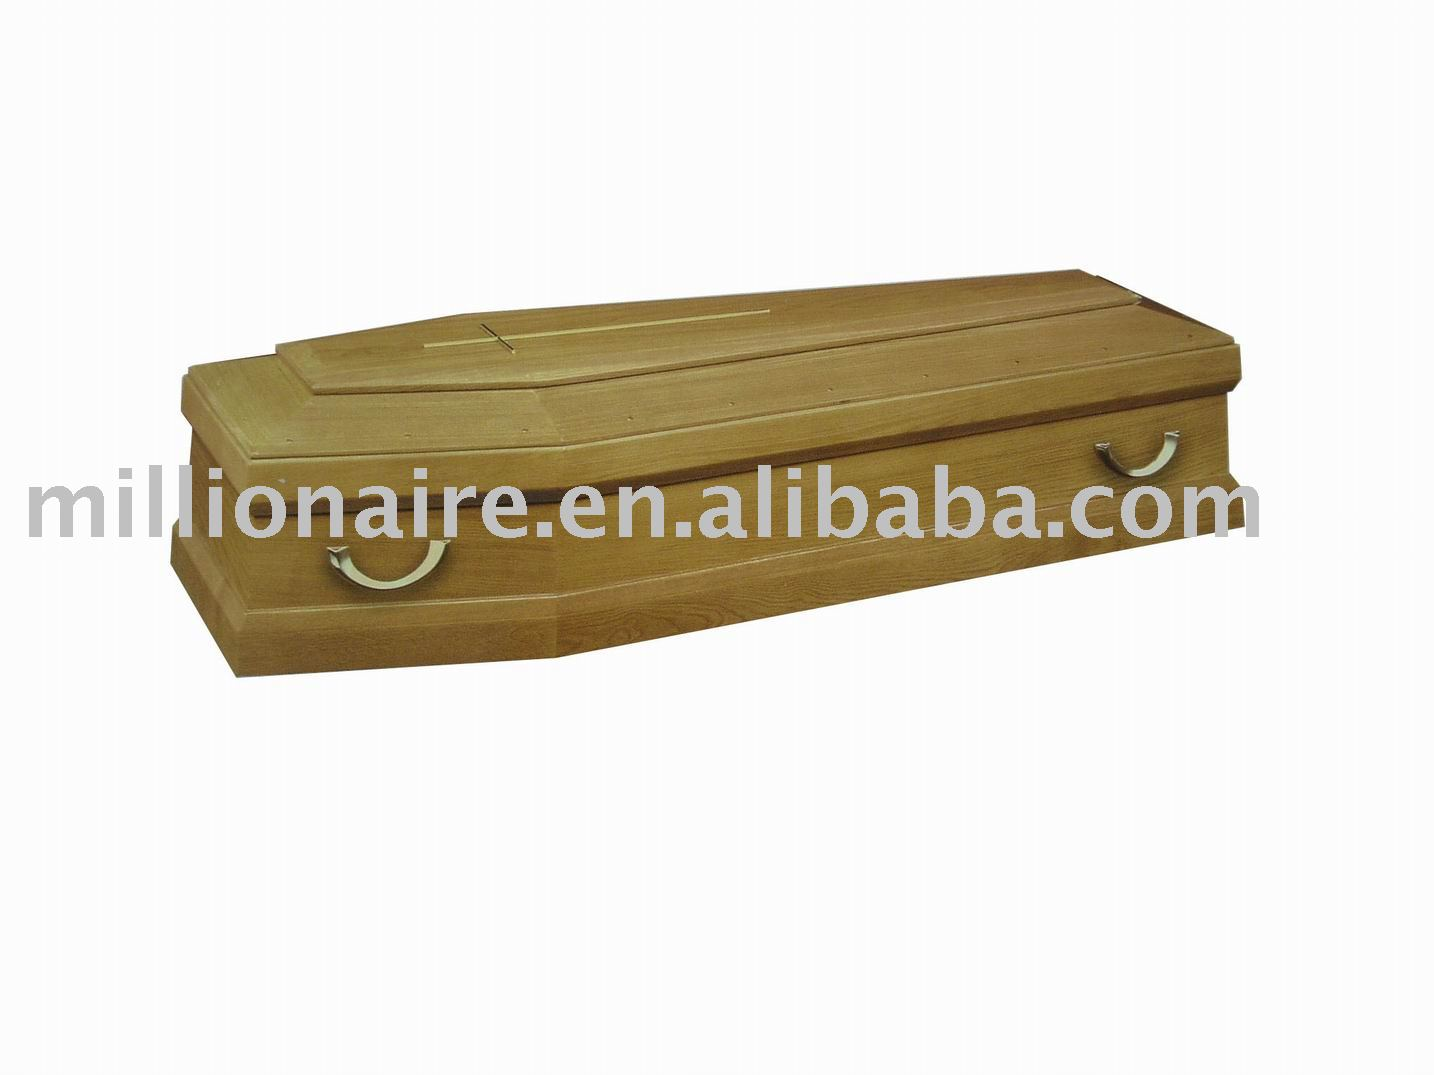 wooden baby oak coffin sales,funeral coffin